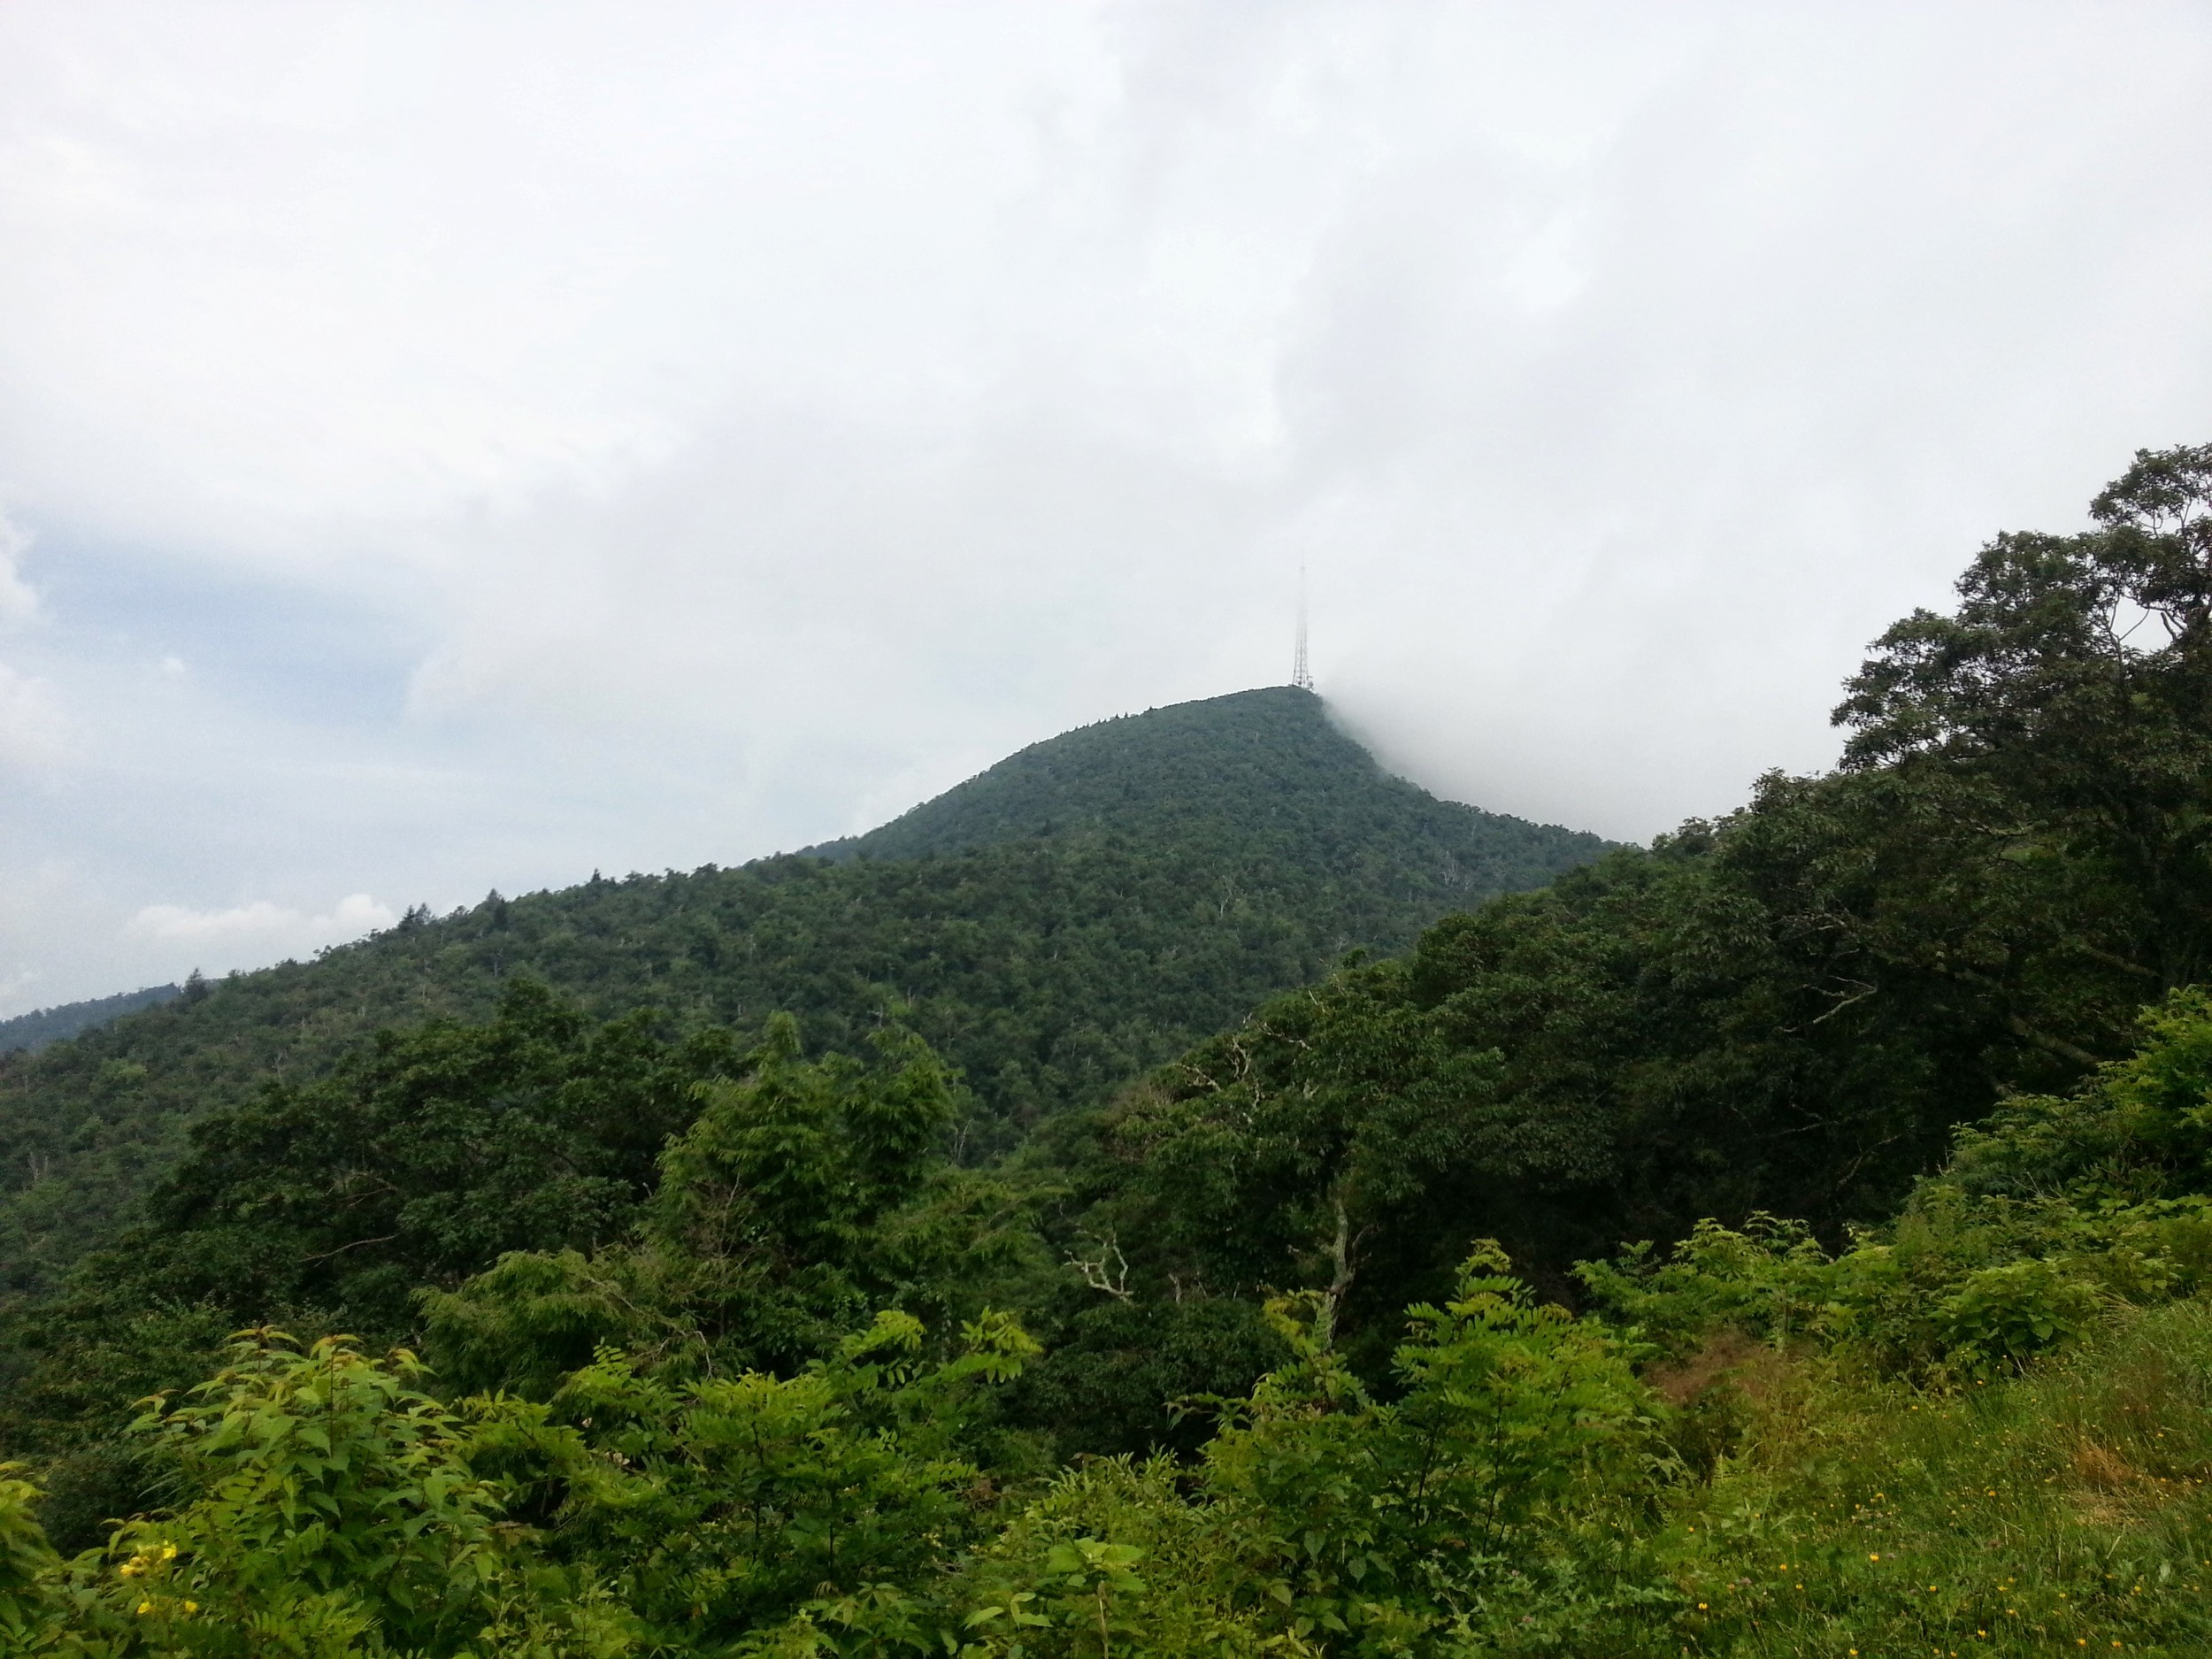 """Mount Pisgah. And yes, all my friends got an excited snapchat of it with a caption """"I CLIMBED THAT!"""" after we got back to the trailhead. Newbie hiker, I know."""